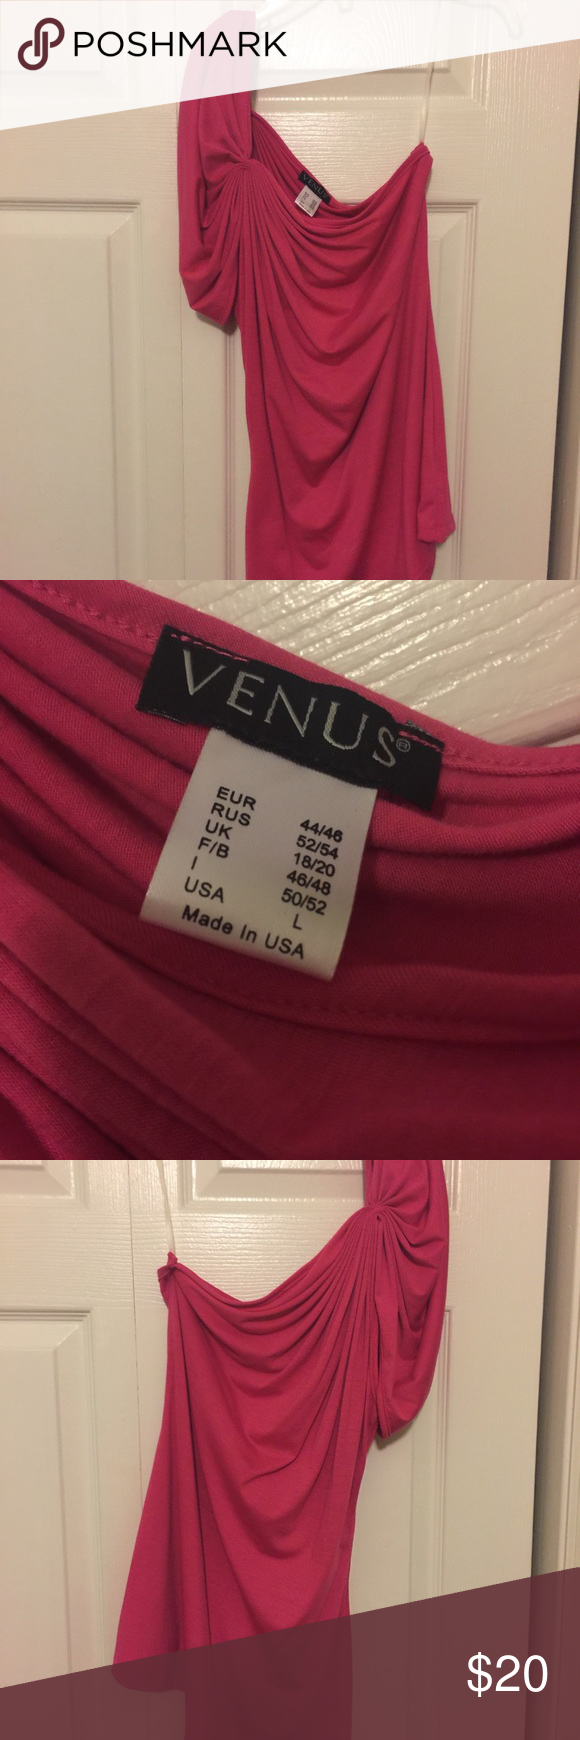 Venus one-shouldered top (size large) Beautiful Venus one-shouldered top. Size large. In excellent condition. Bright pink in color. Venus Tops Blouses